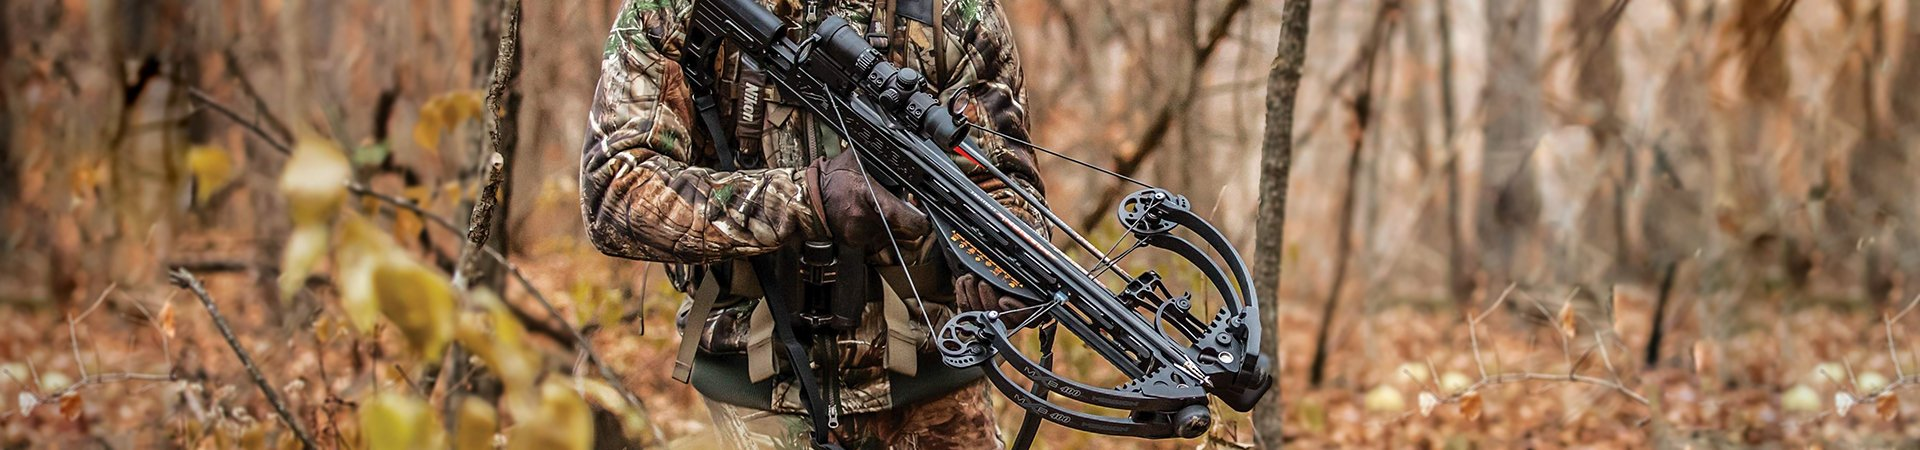 Best Crossbows Under 500 Reviewed in Detail